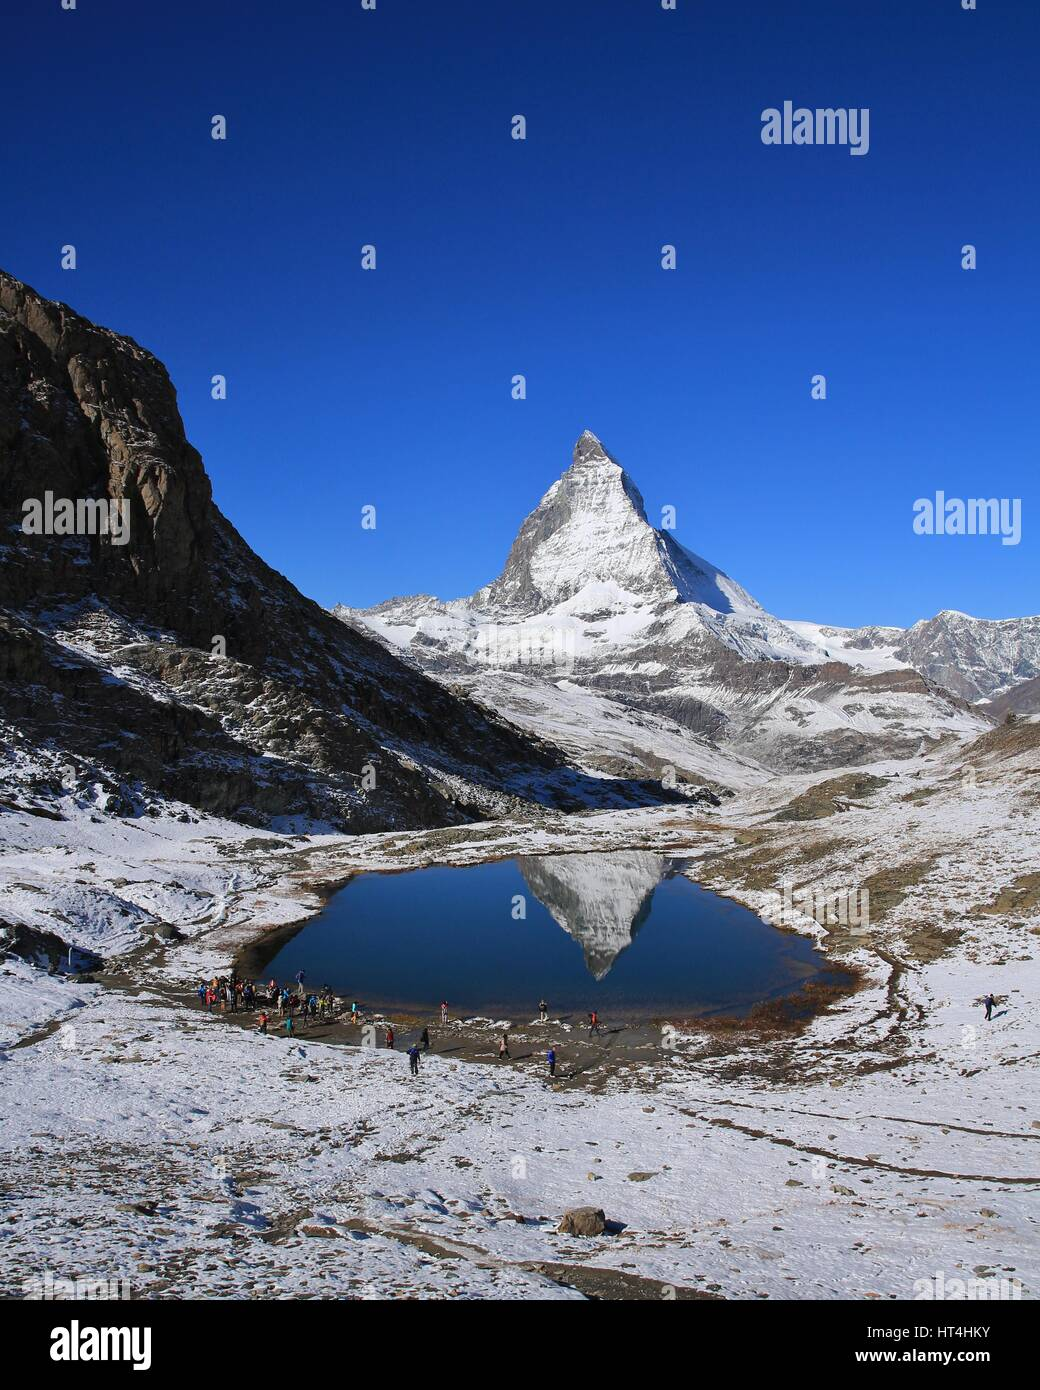 Matterhorn mirroring in lake Riffelsee. Autumn day in the Swiss Alps. - Stock Image